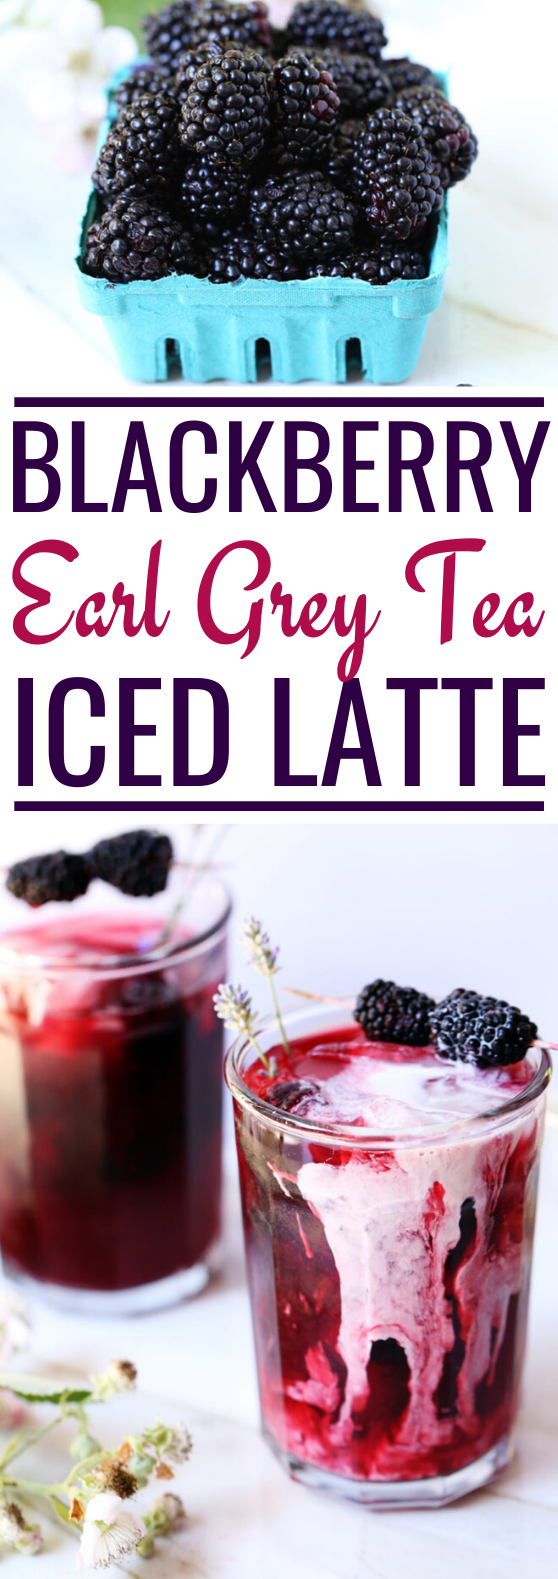 Iced Blackberry Infused Earl Grey Tea #drink #recipes #tea #latte #refreshing